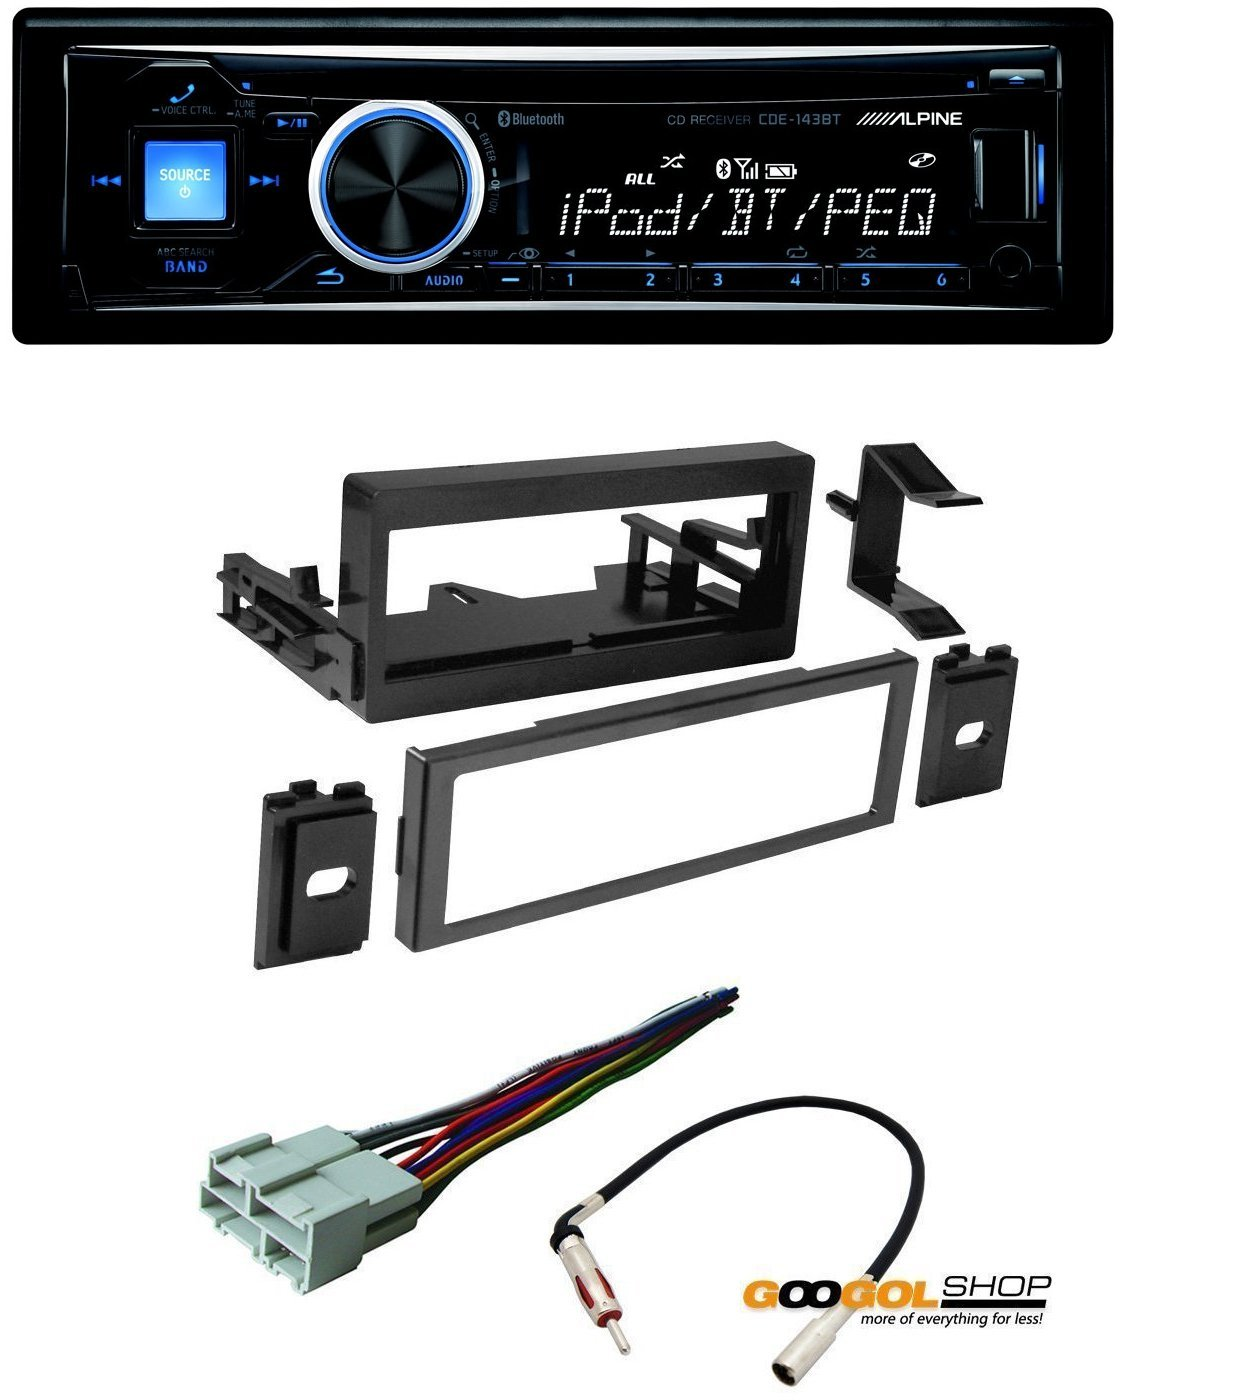 CAR STEREO DASH INSTALL MOUNTING KIT + WIRE HARNESS + RADIO ANTENNA FOR CADILLAC CHEVROLET GMC With Alpine CDE-143BT Advanced Bluetooth CD Receiver by CACHE, METRA, AMERICAN INTERNATIONAL, ALPINE